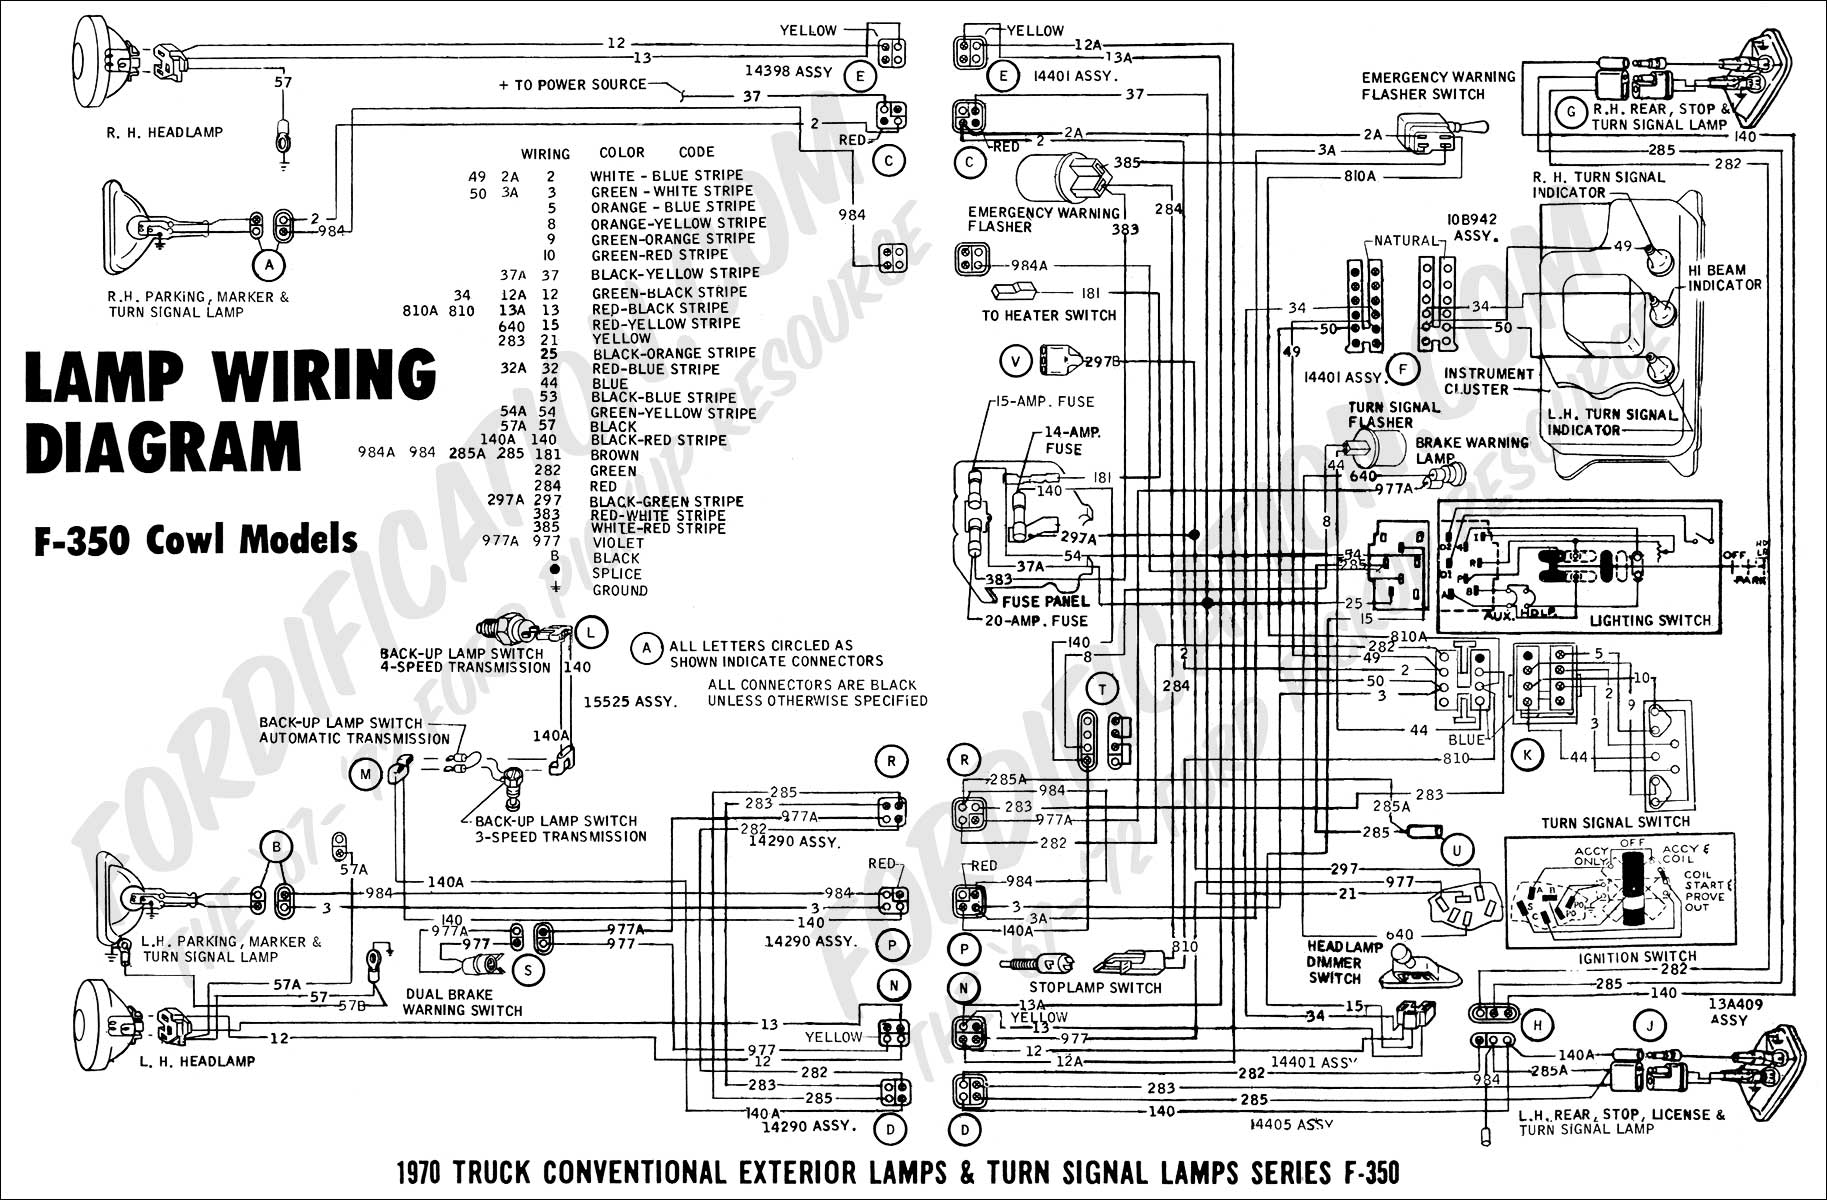 1973 F700 Wiring Diagram | Wiring Diagram Main Relay Wiring Diagram Chevy Sel Truck on